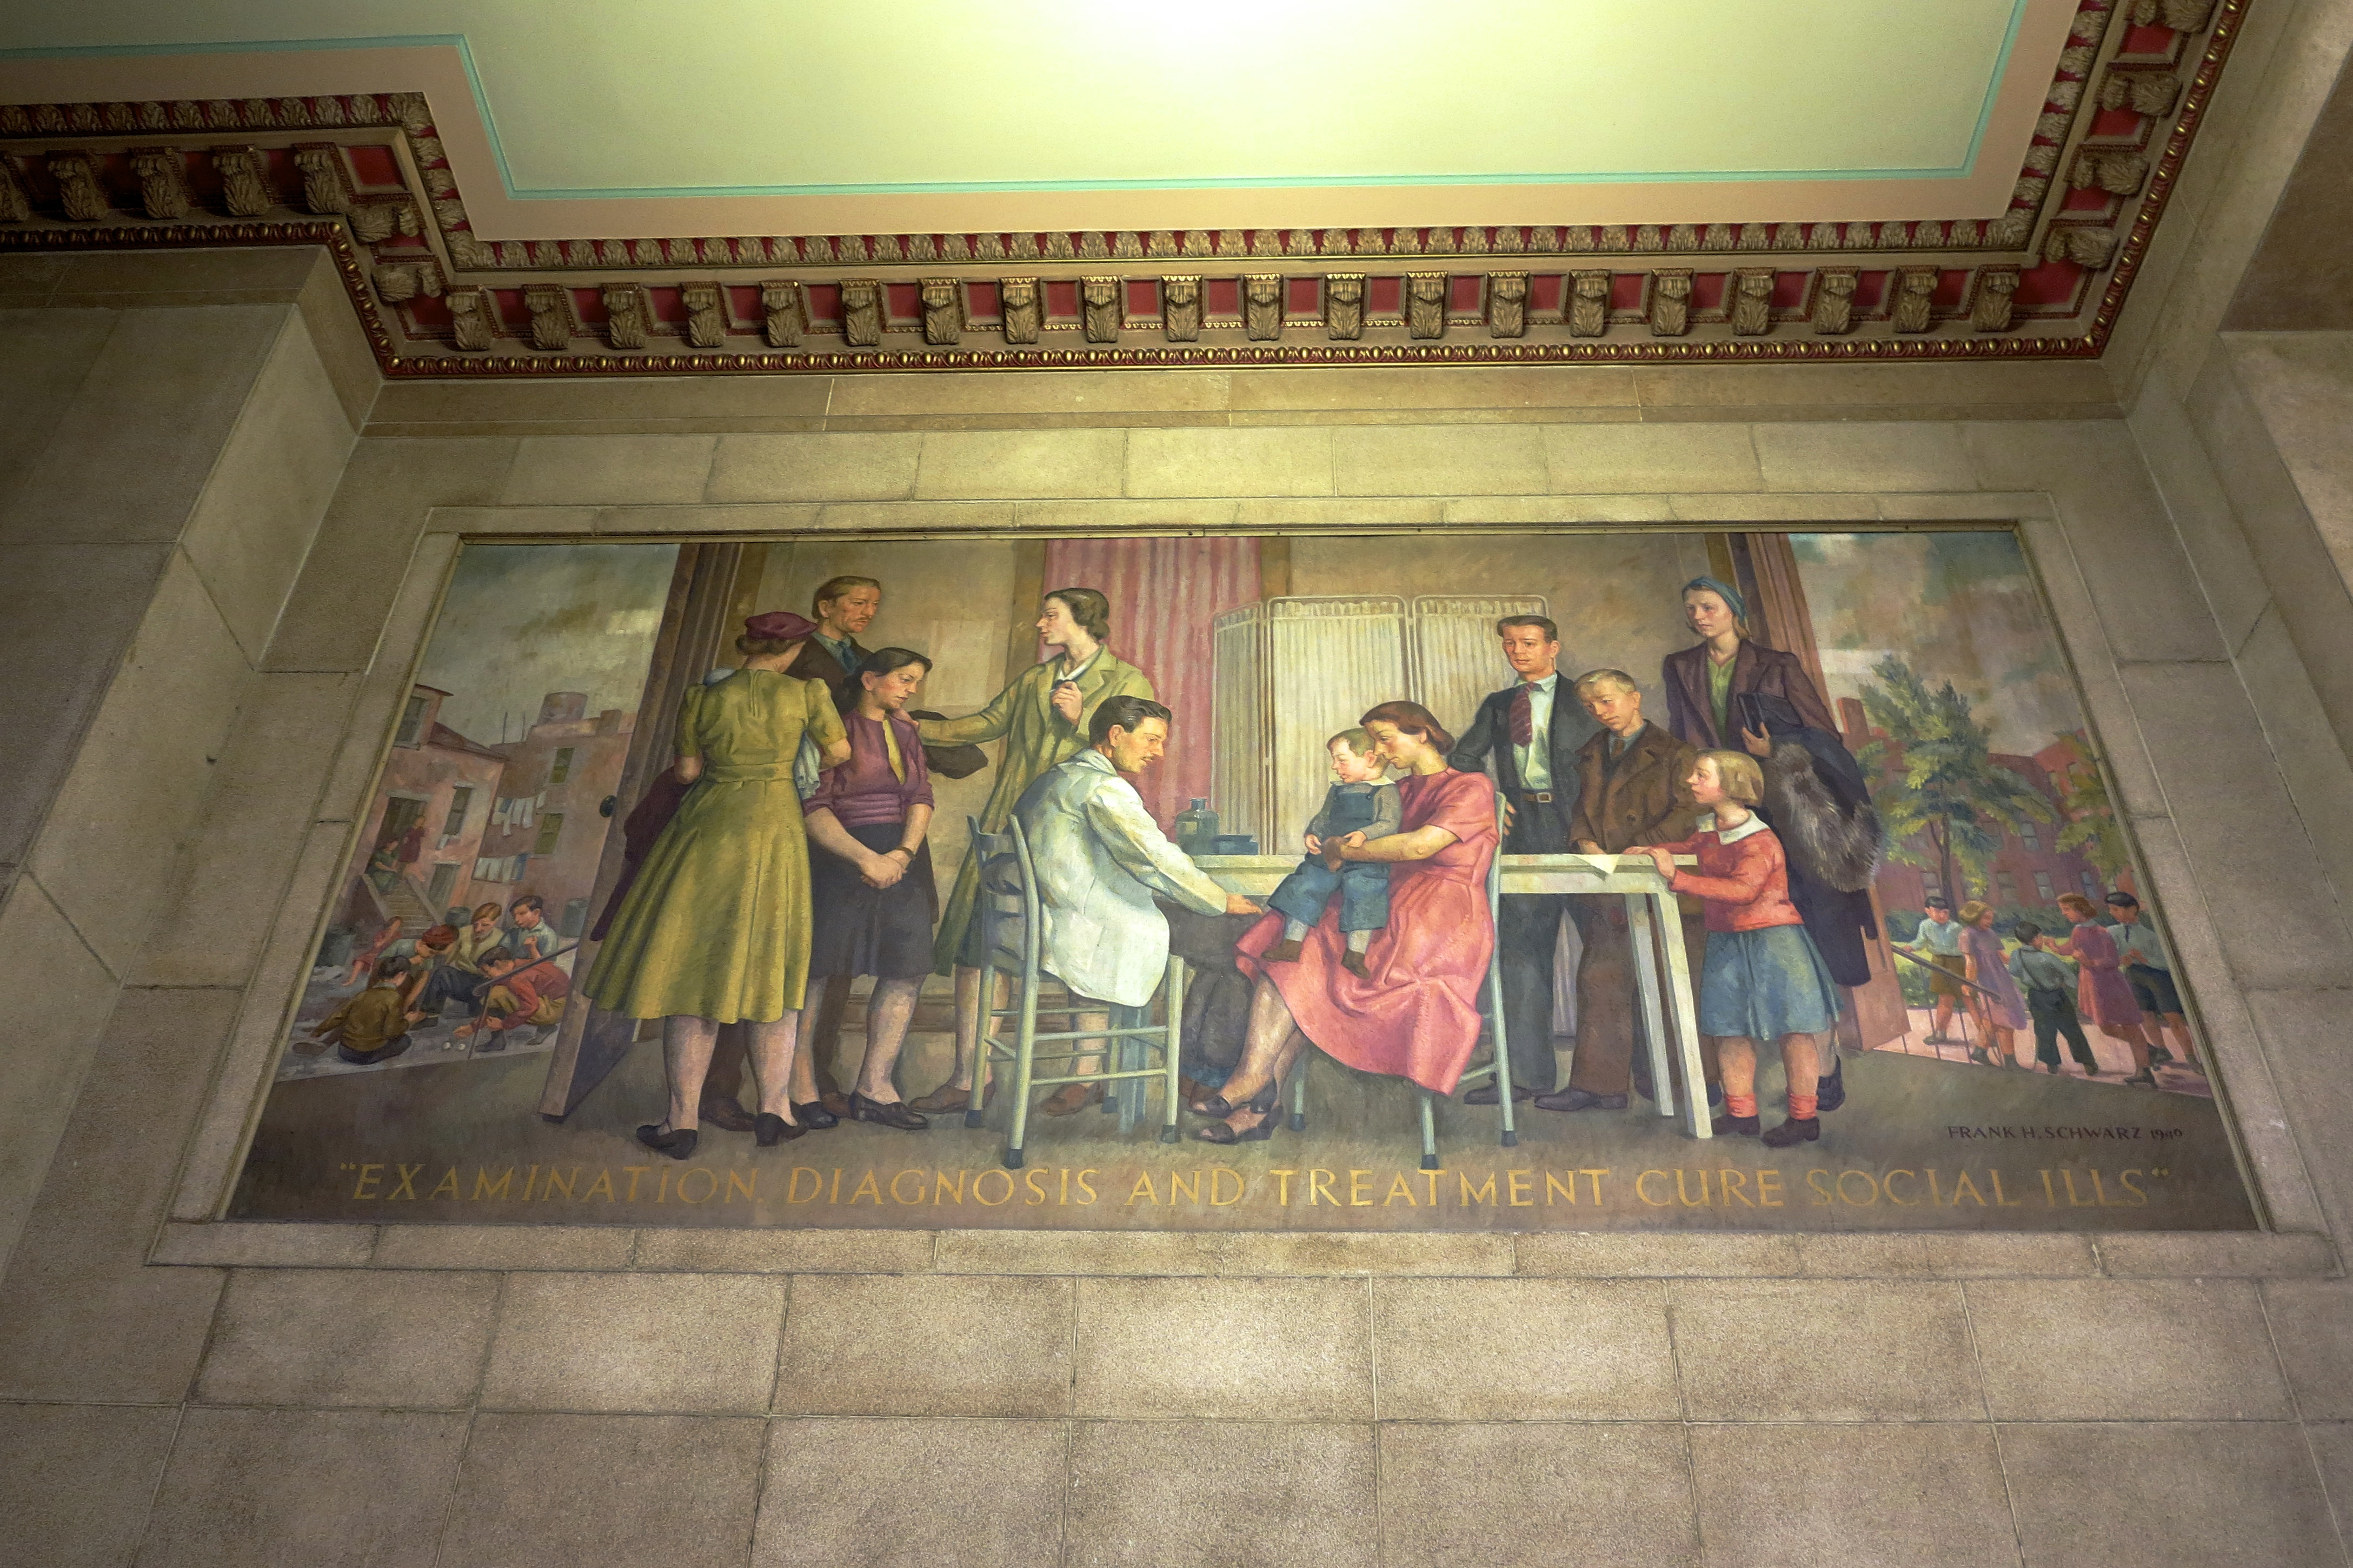 Examination diagnosis and treatment cure social ills - Elevator bank mural by Frank H Schwartz